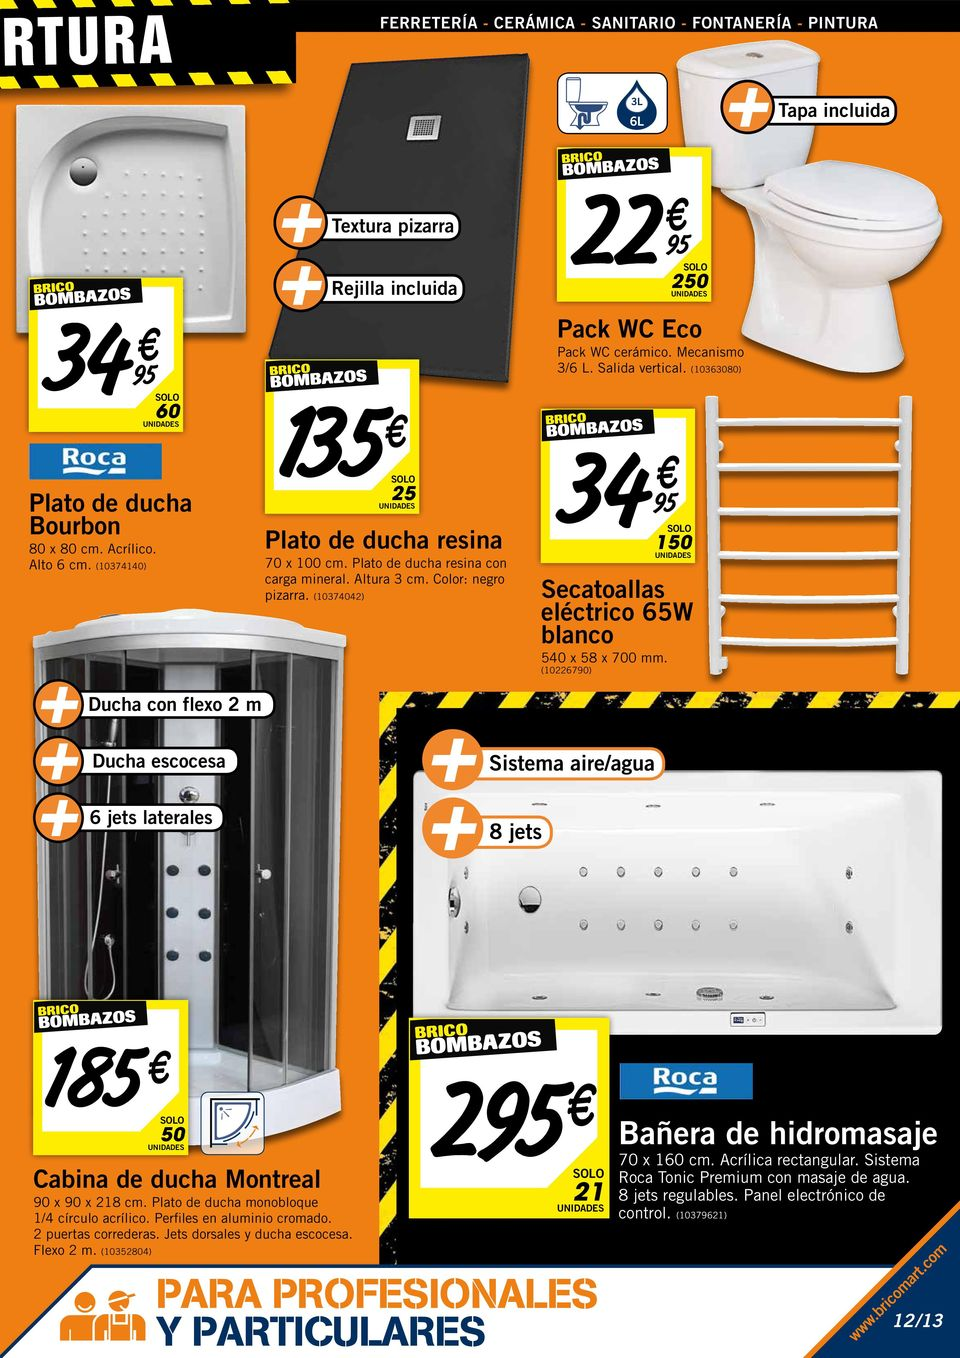 (10370) 50 3 150 Pack WC Eco Pack wc cerámico. Mecanismo 3/6 L. Salida vertical. (10363080) Secatoallas eléctrico 65W blanco 50 x 58 x 700 mm.